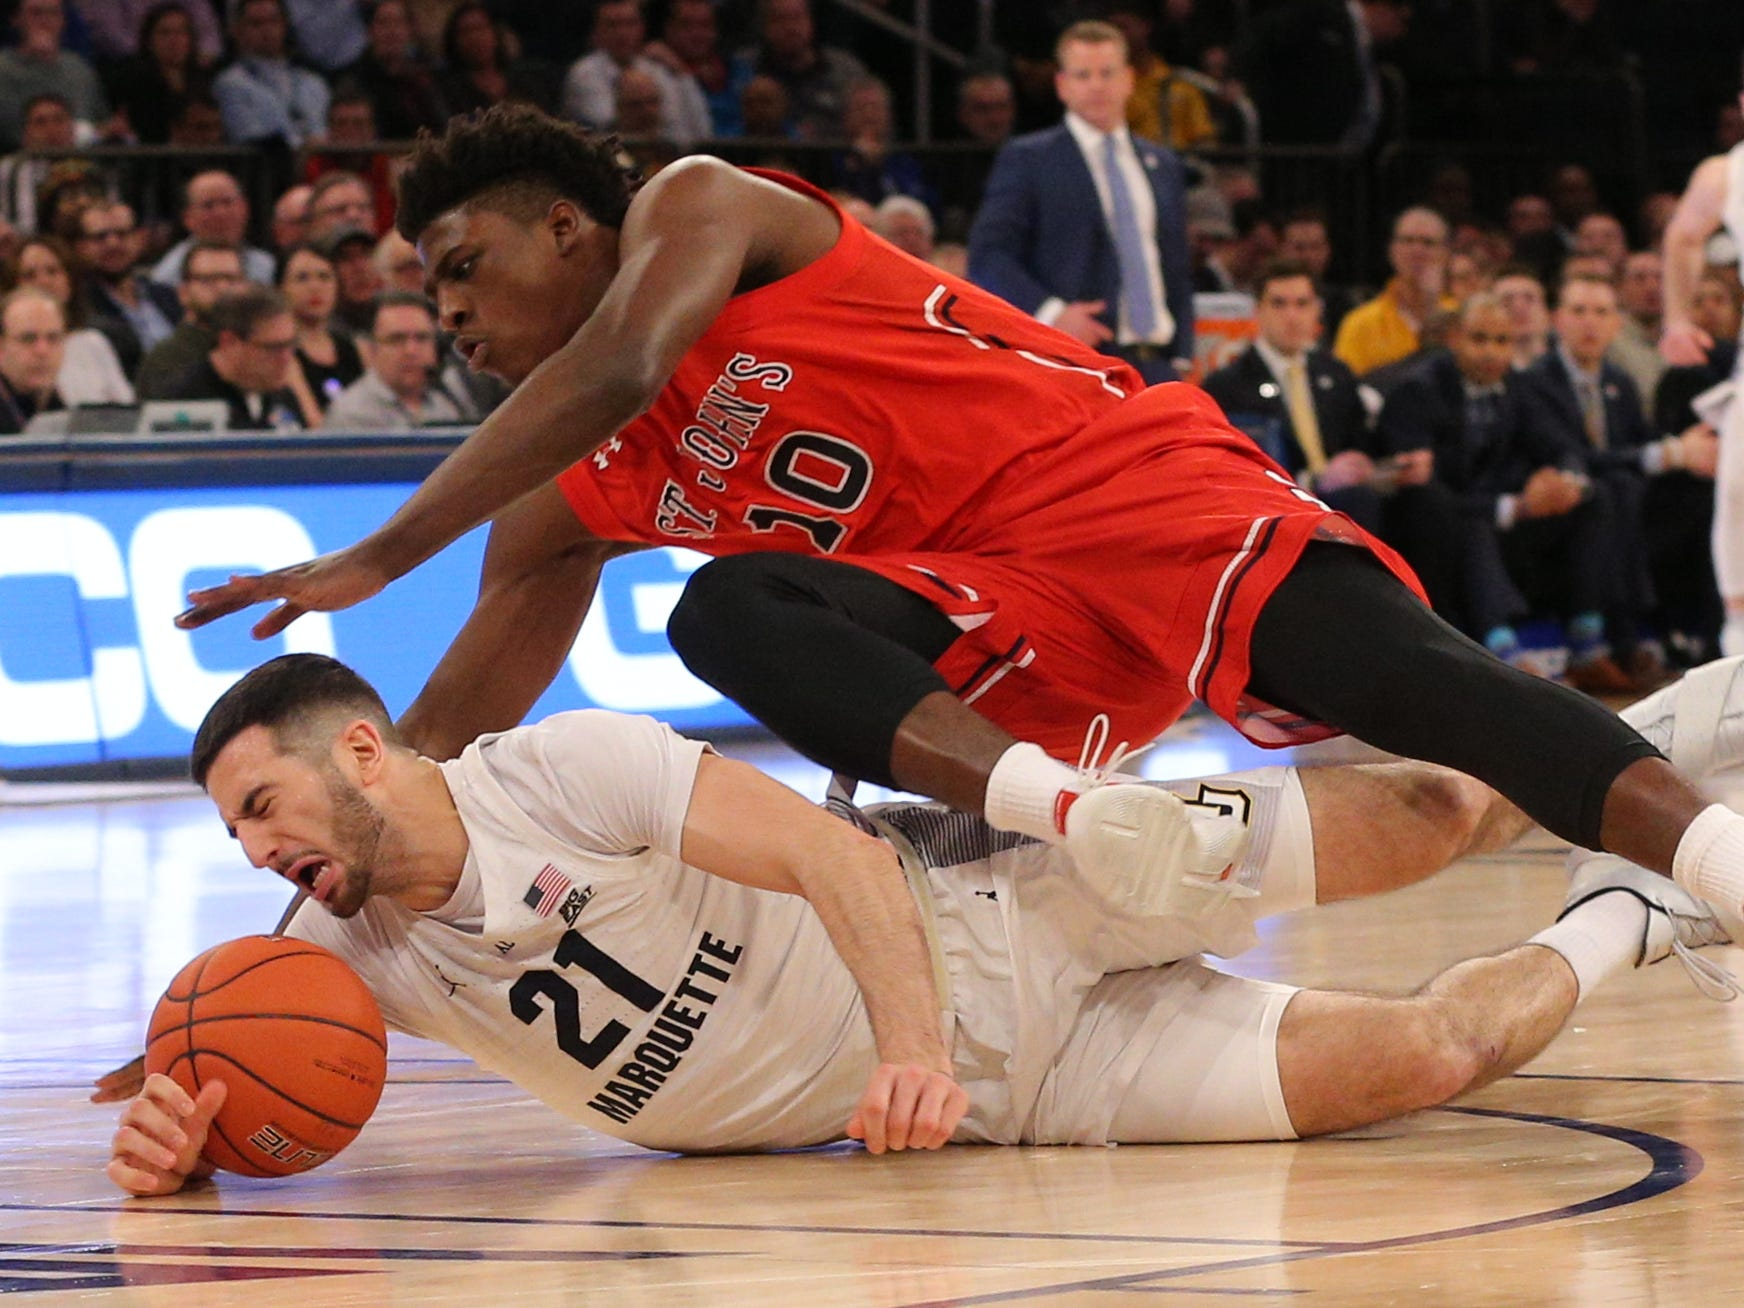 Marquette's Joseph Chartouny and St. John's Marcellus Earlington go after a loose ball.